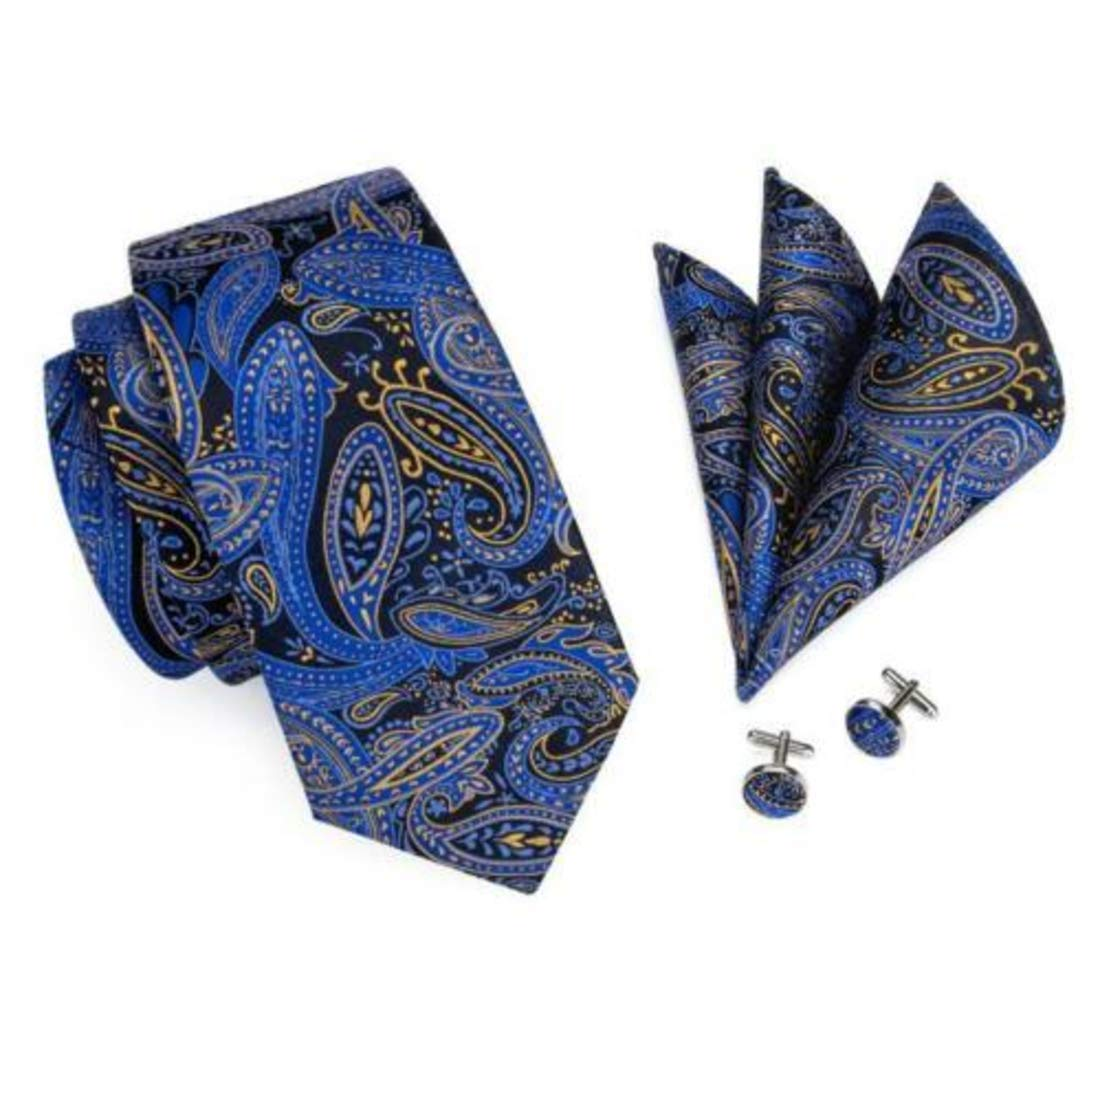 Irvint /& Co Blue Black Paisley Silk USA Necktie With Pocket Square And Cufflinks Set Bussiness Wedding Yellow